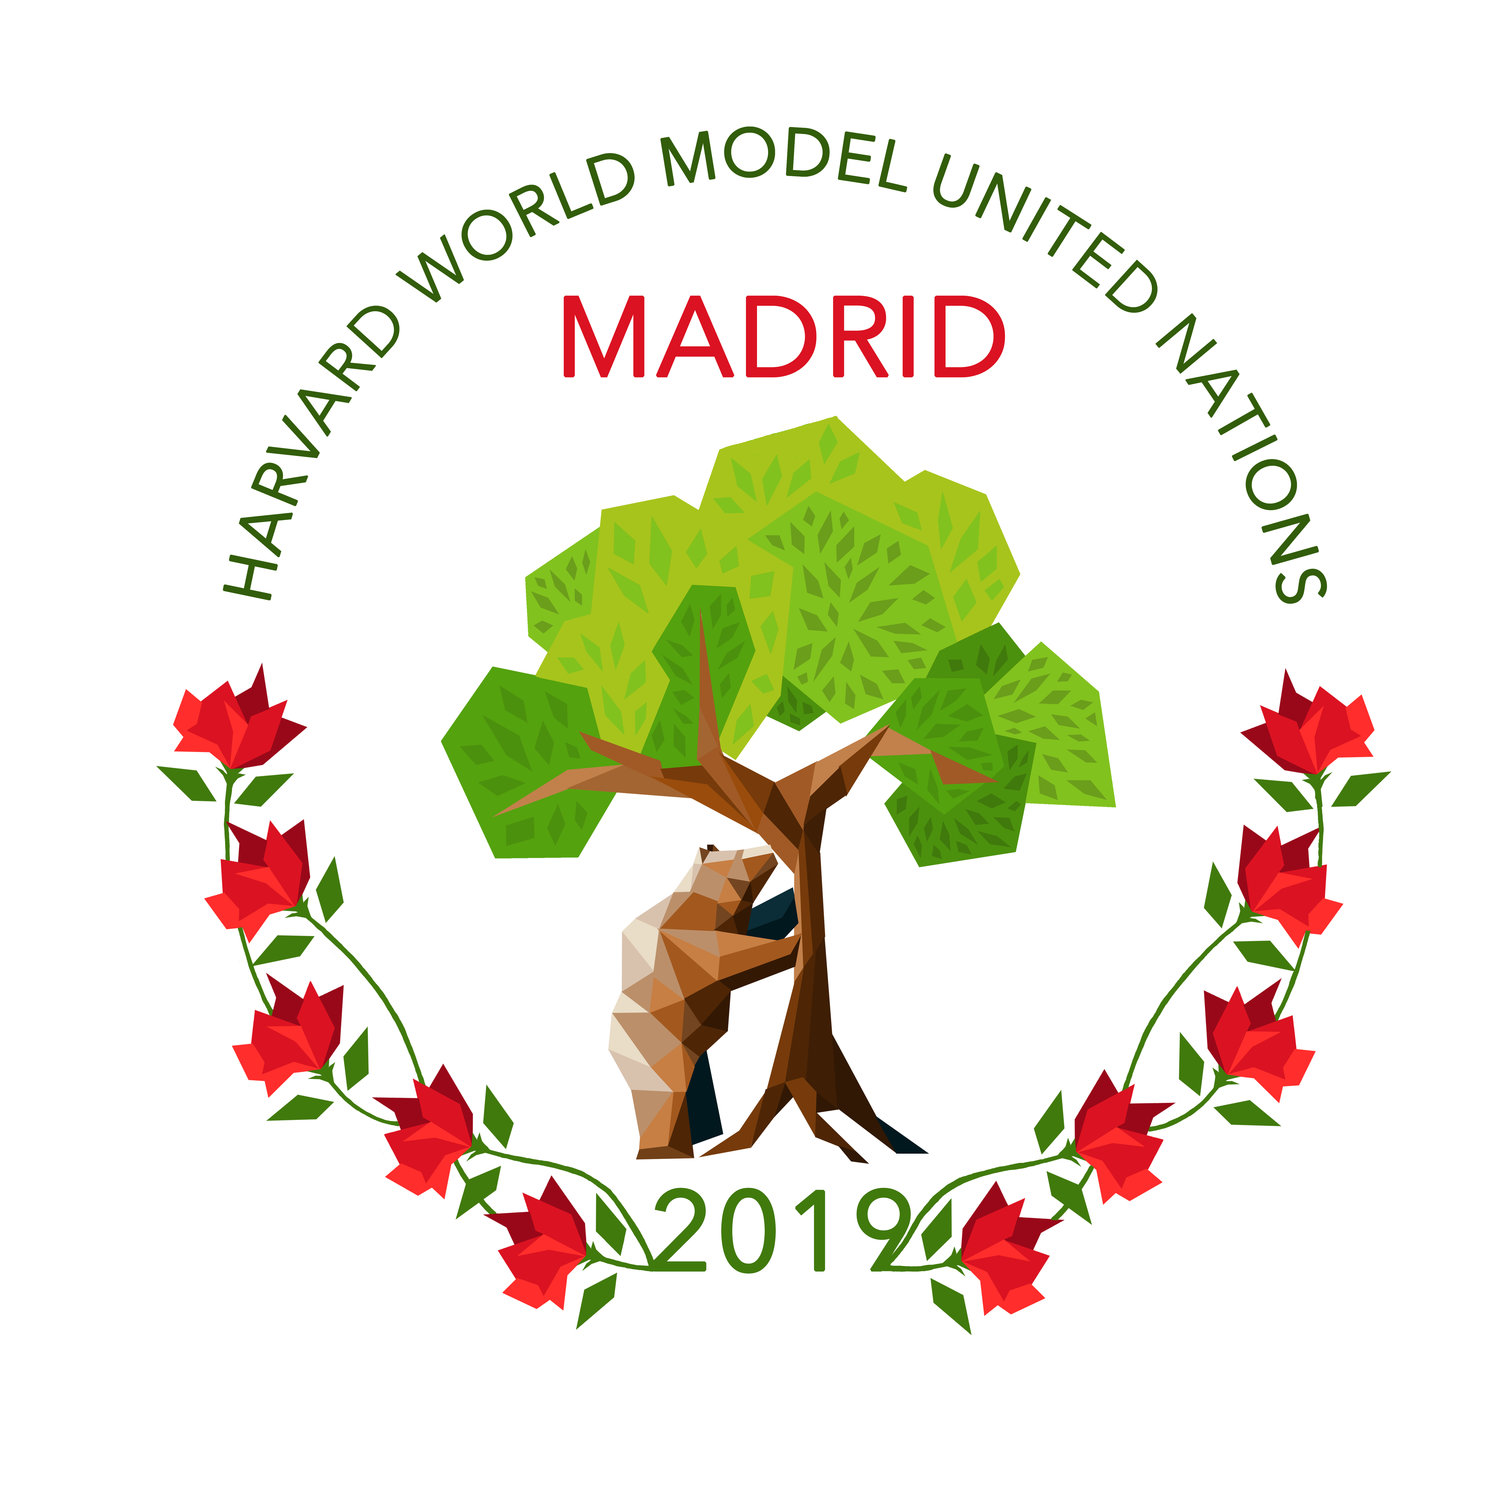 Harvard World Model United Nations 2019